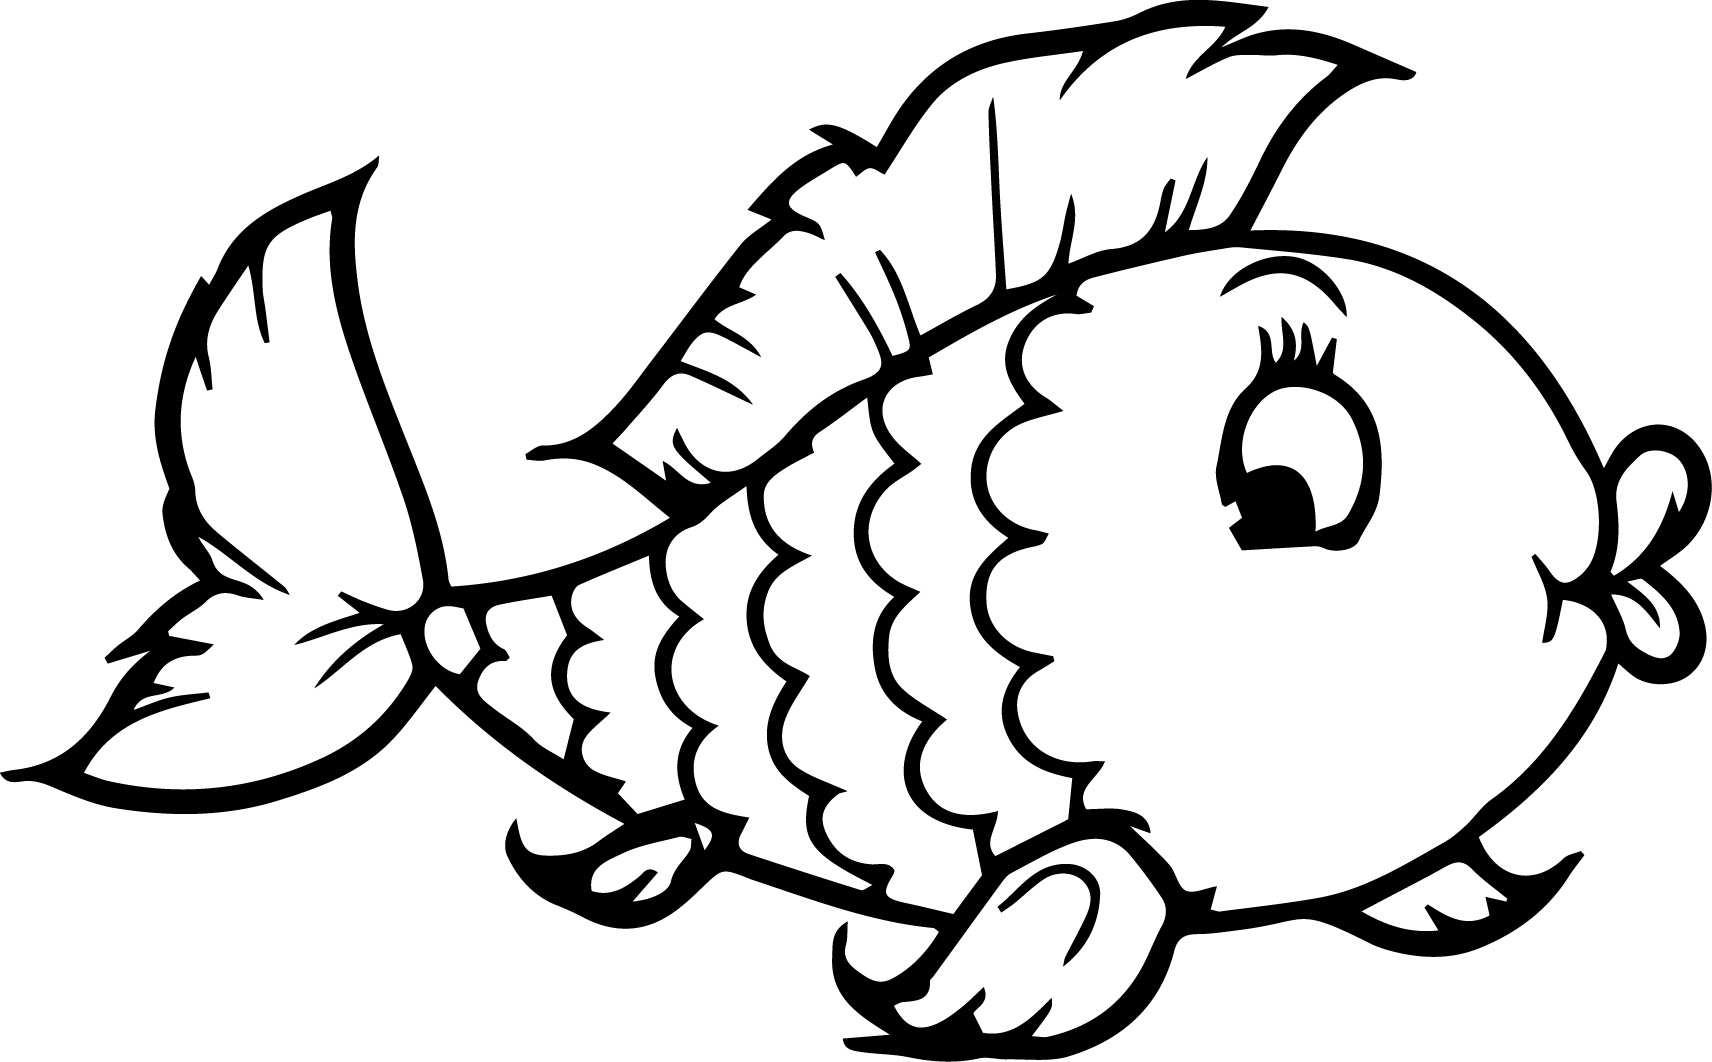 coloring fish pages fish coloring pages for kids 14 pics how to draw in 1 pages fish coloring